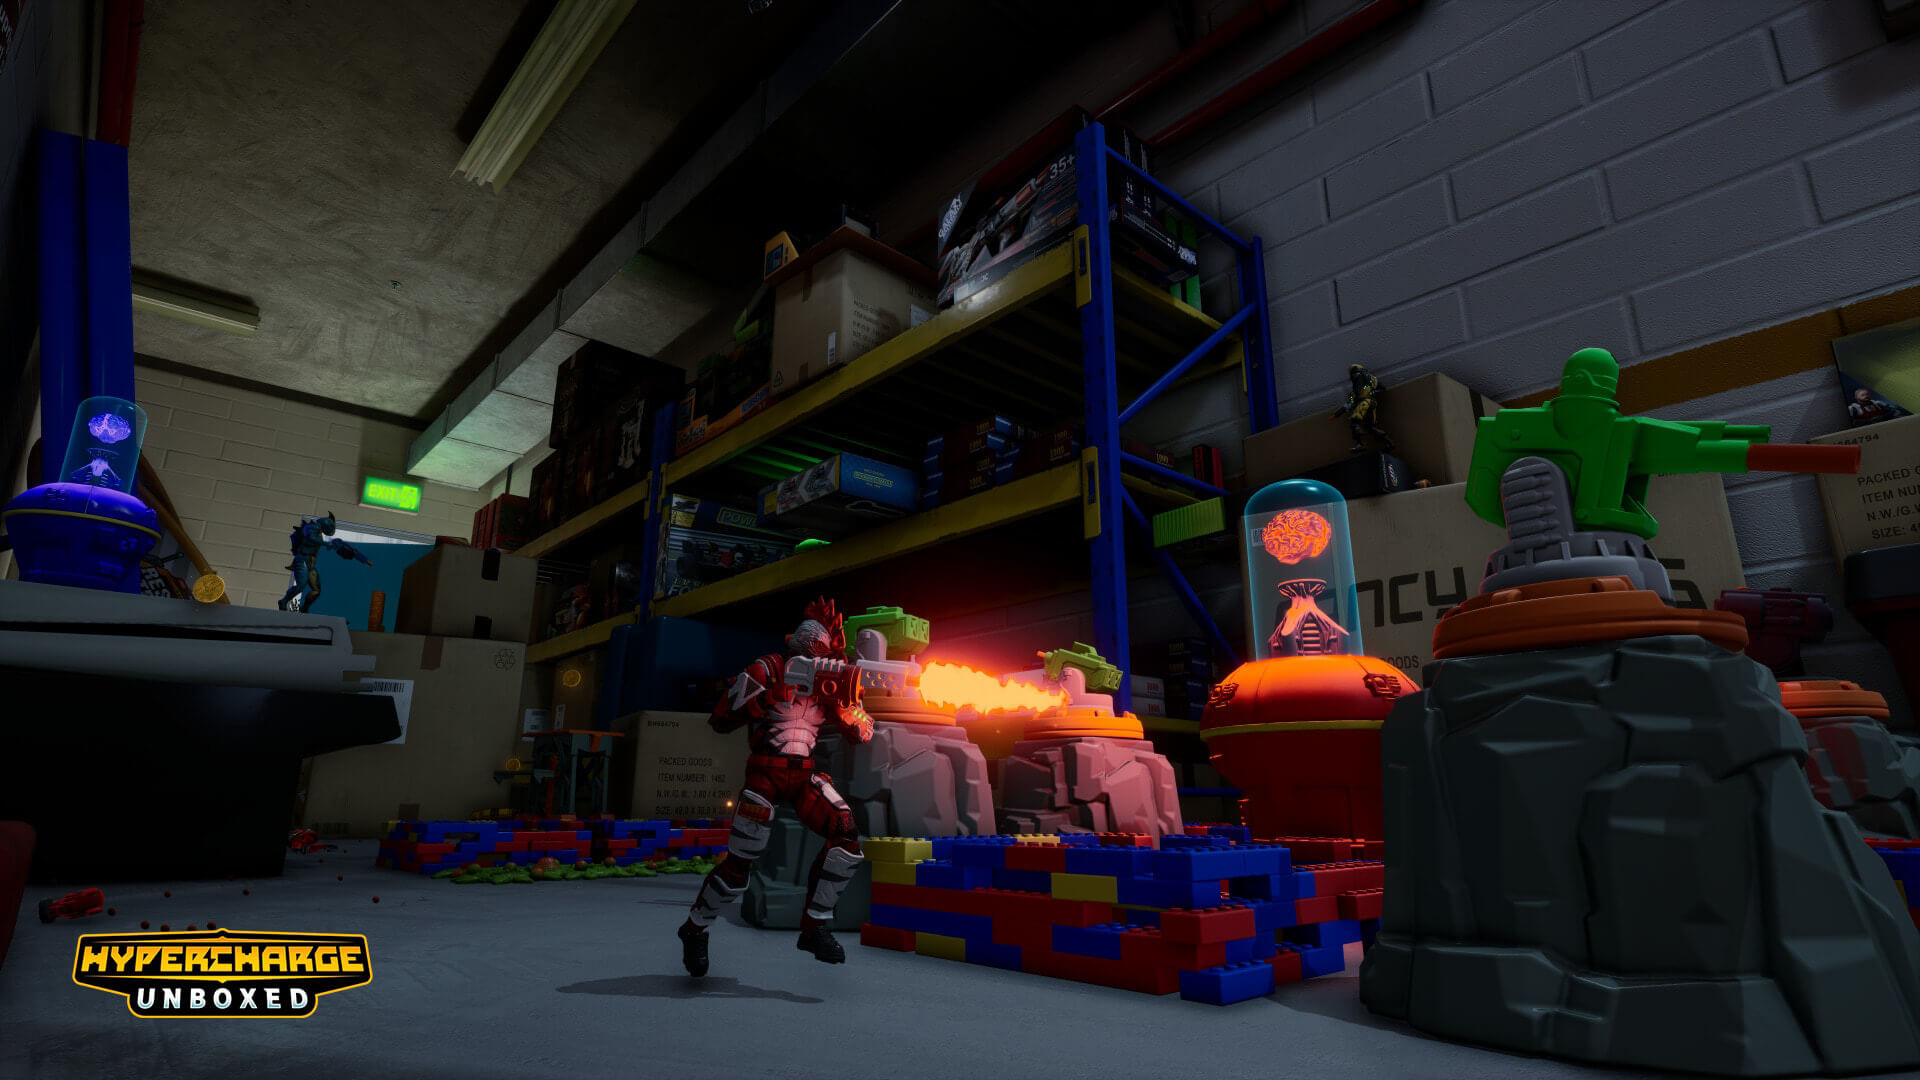 Armed with charm, HYPERCHARGE: Unboxed creates a compelling